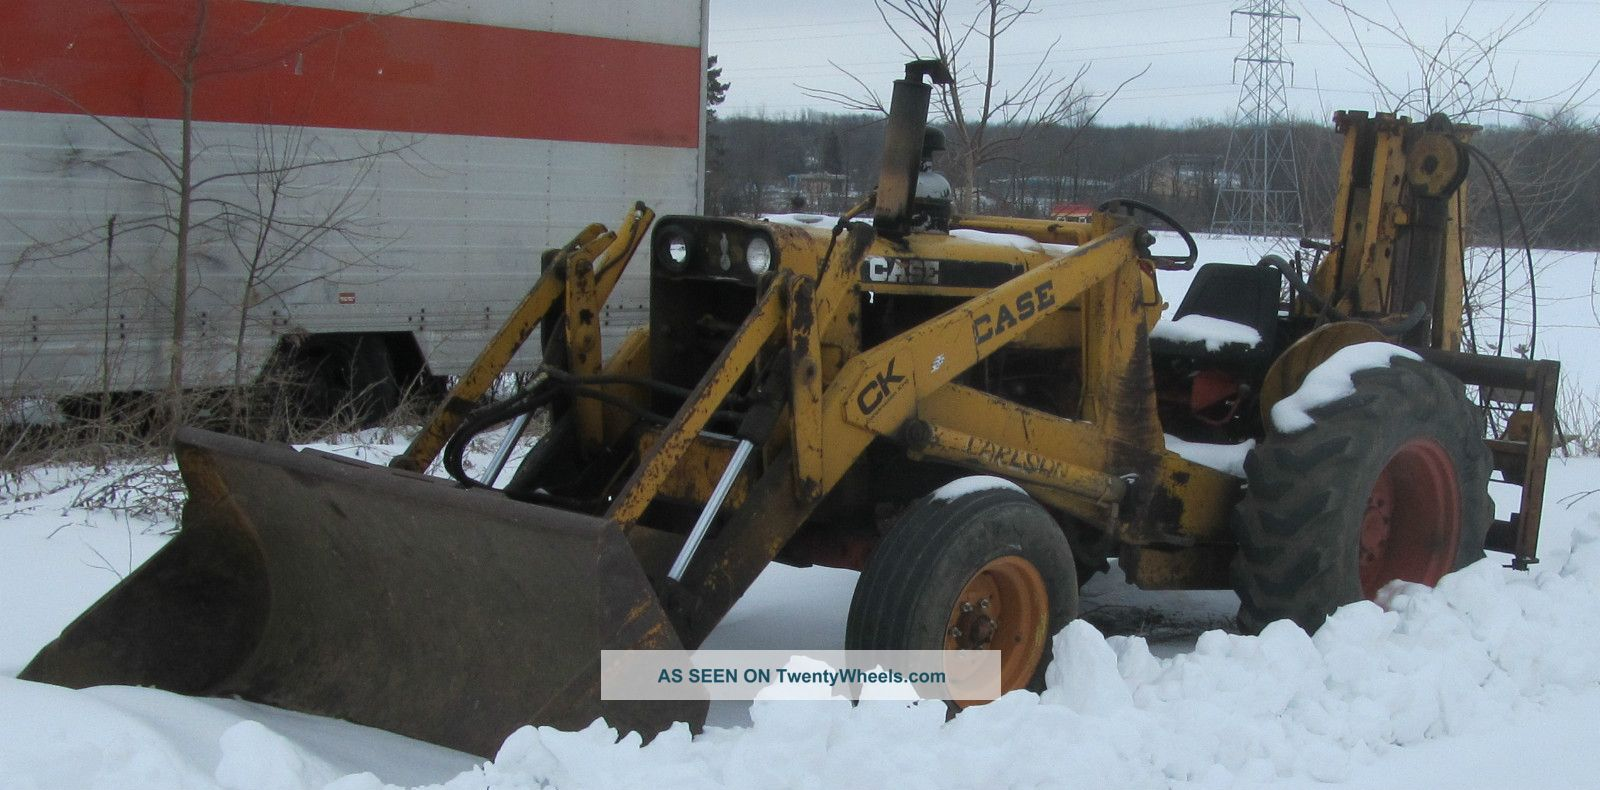 1969 Case 580ck With Bucket & Bradco Hammer Backhoe Loaders photo